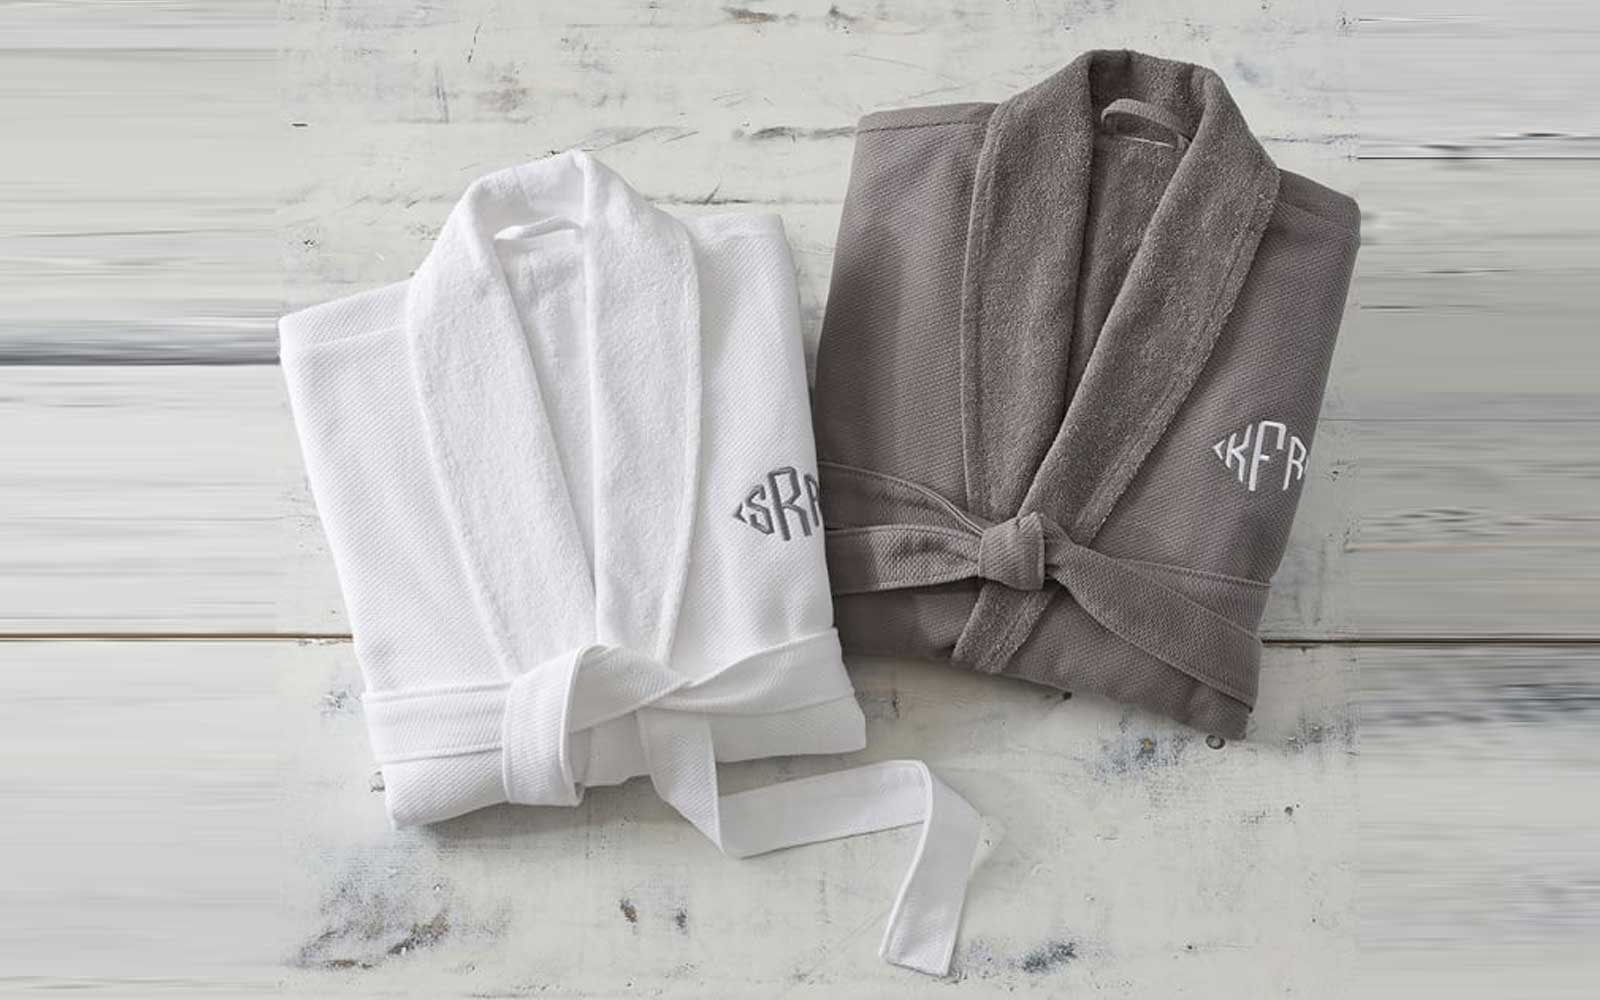 Hotel bathrobes you can buy